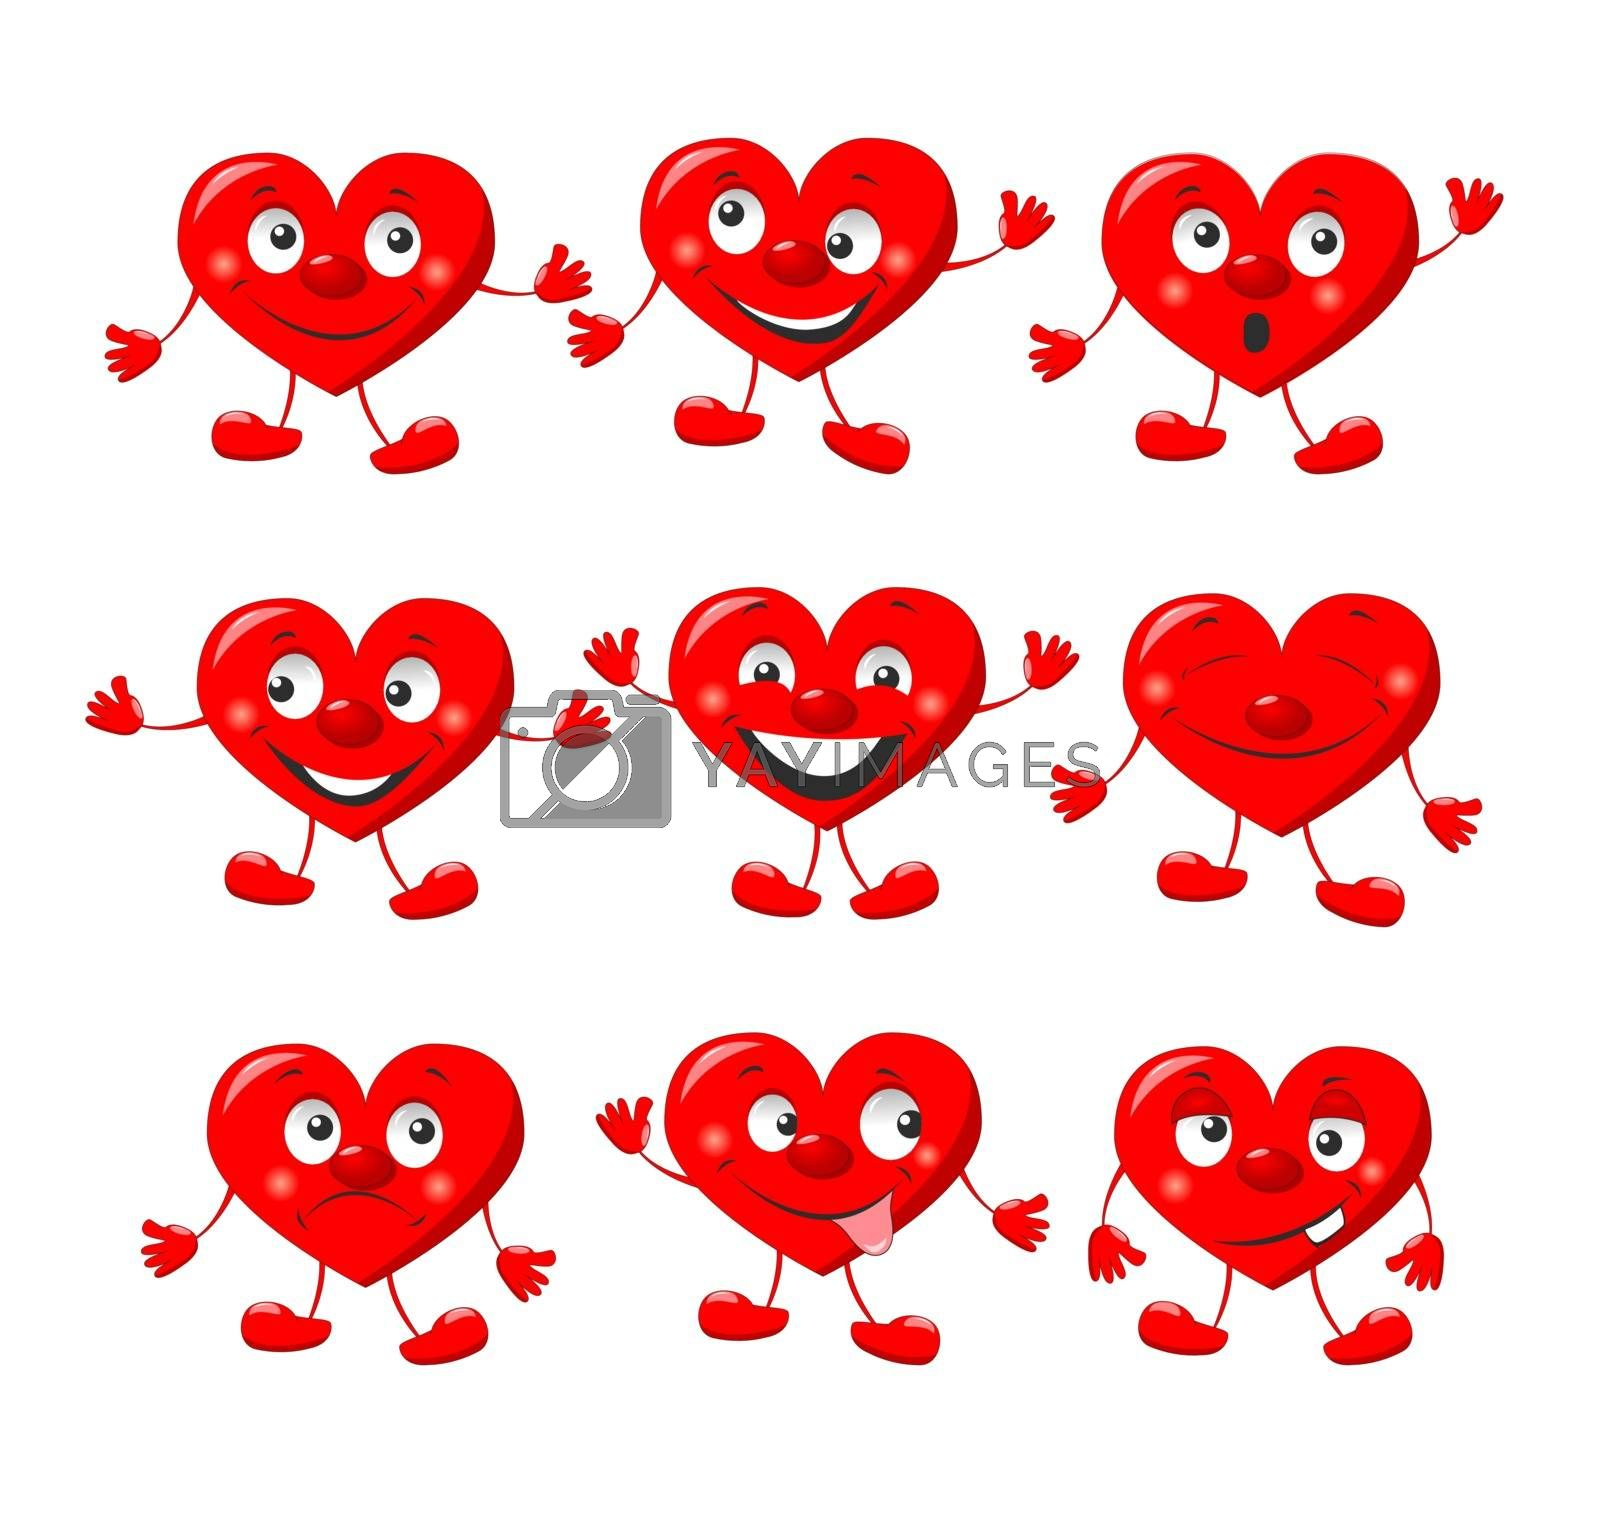 Cartoon cheerful hearts, characters for Valentine's Day